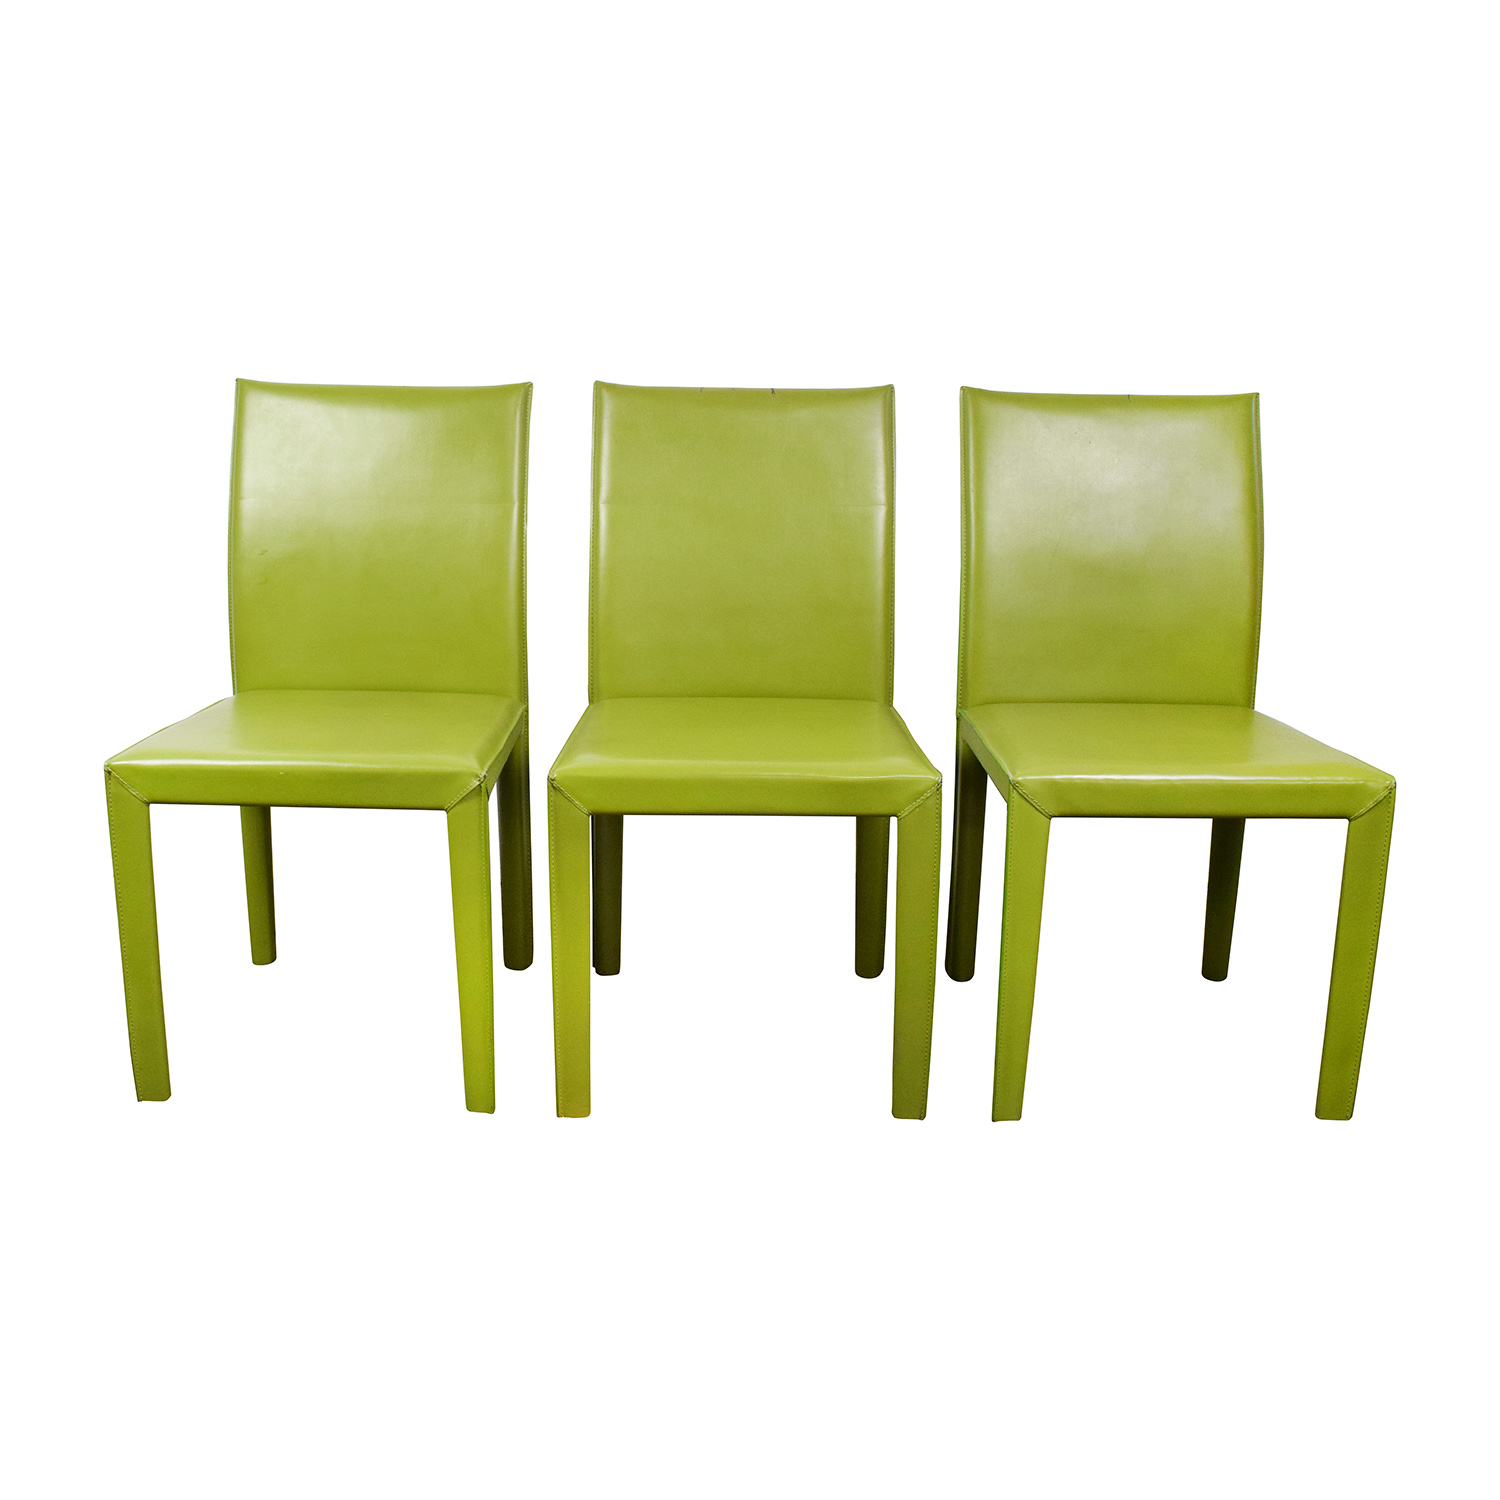 Lime Green Accent Chair Accent Chairs Used Accent Chairs For Sale